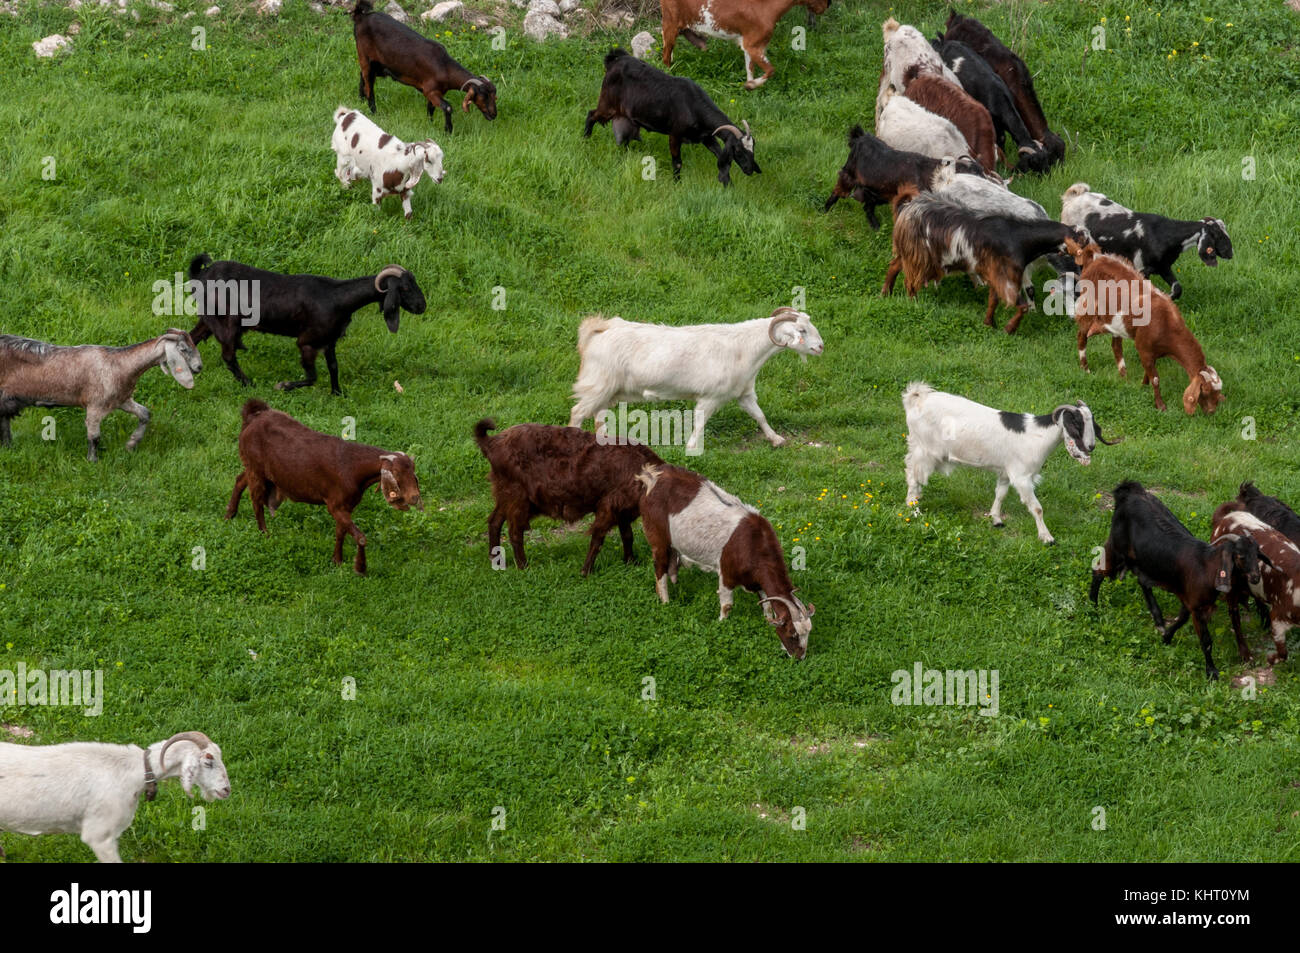 A herd of goats in a green field - Stock Image